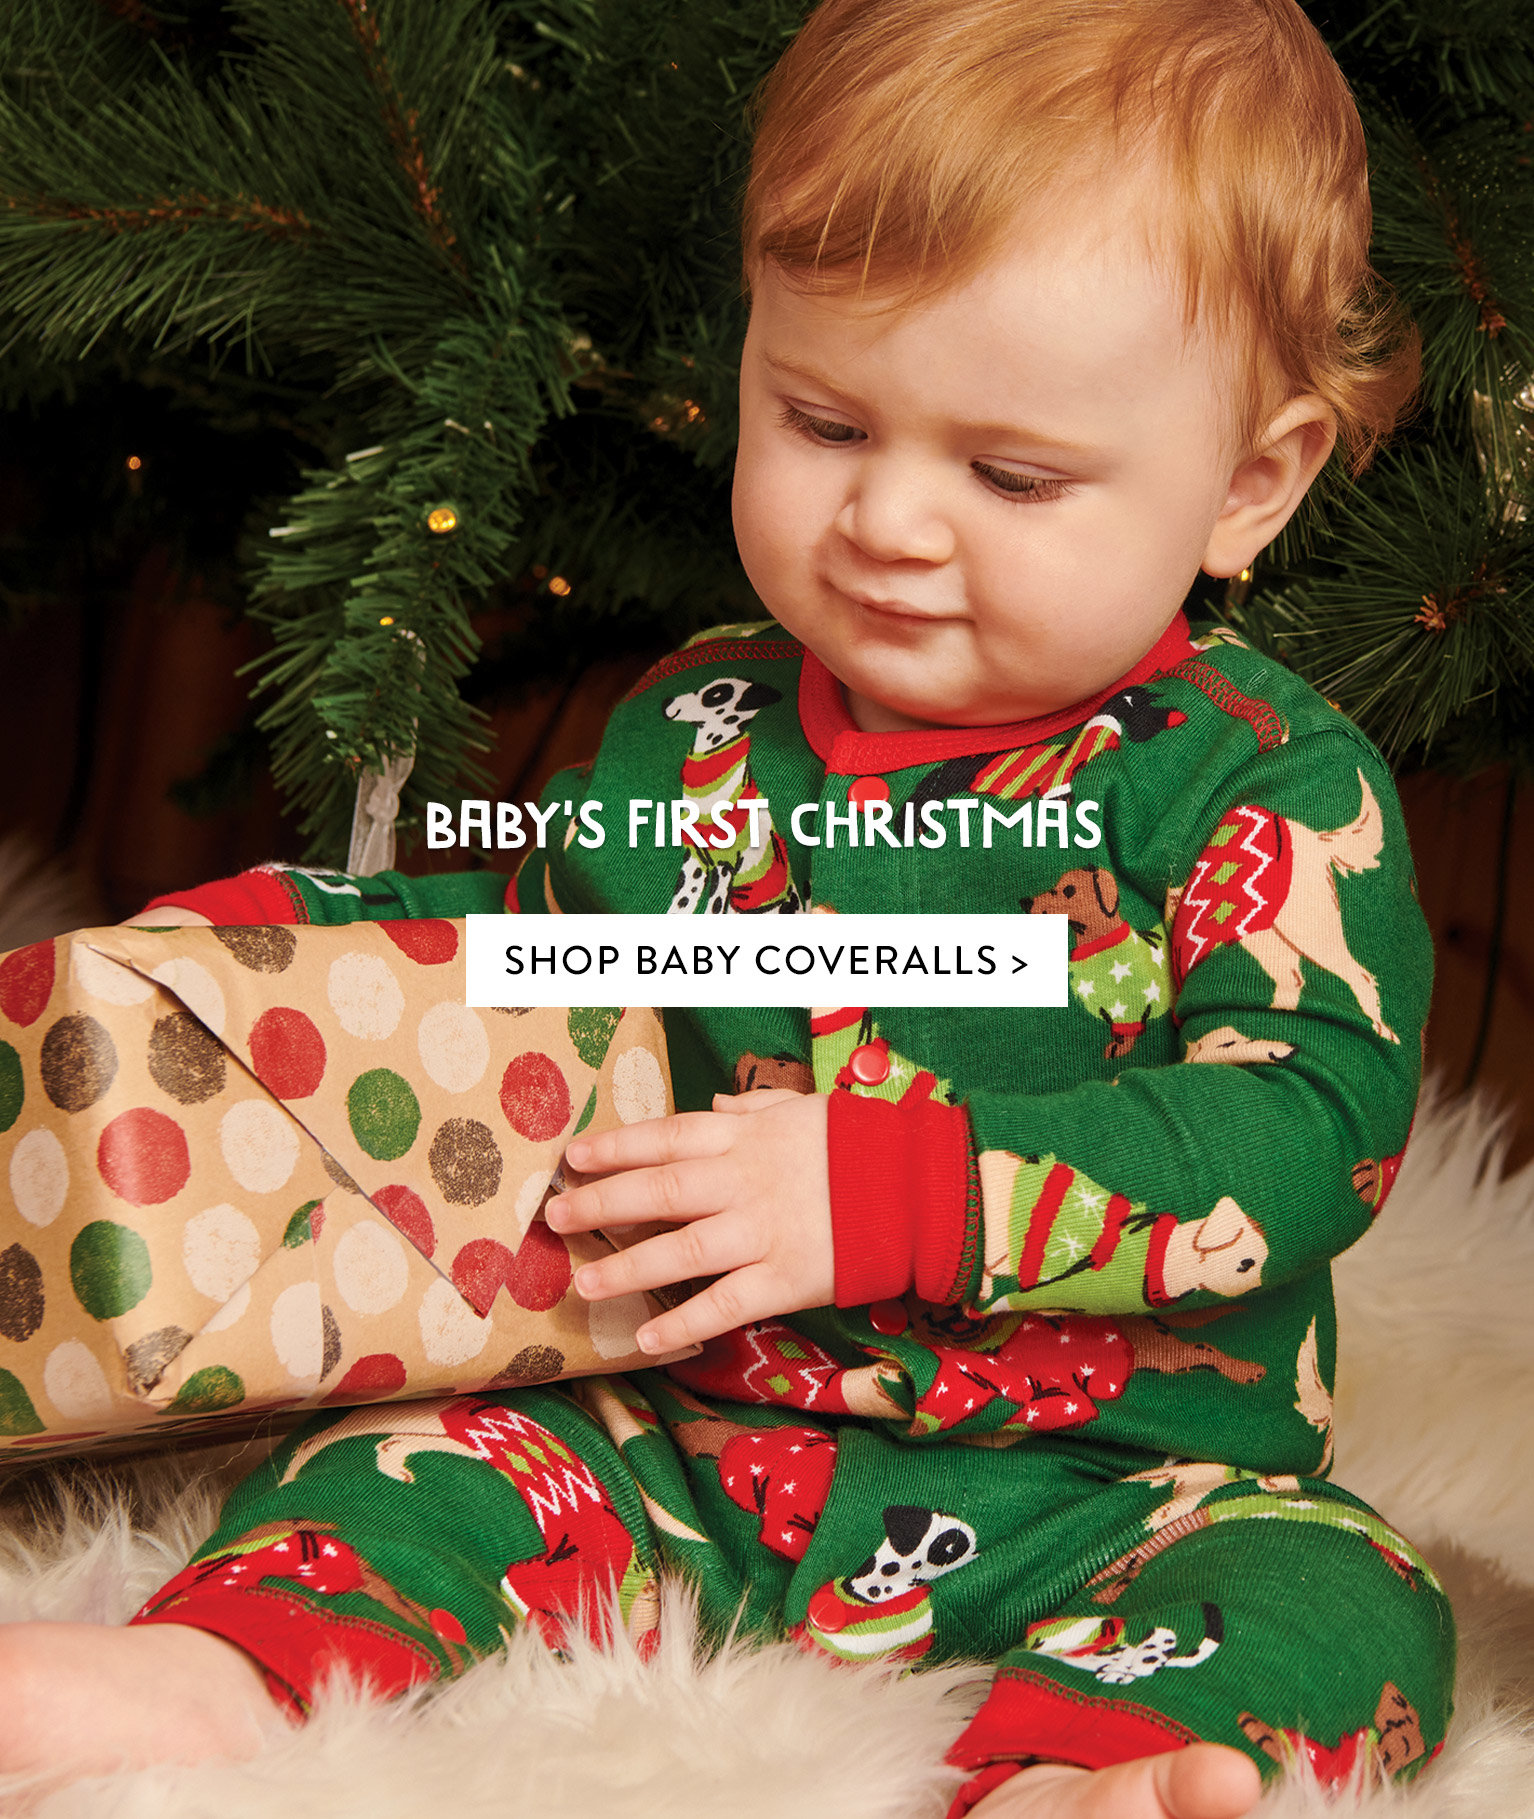 Baby's first christmas